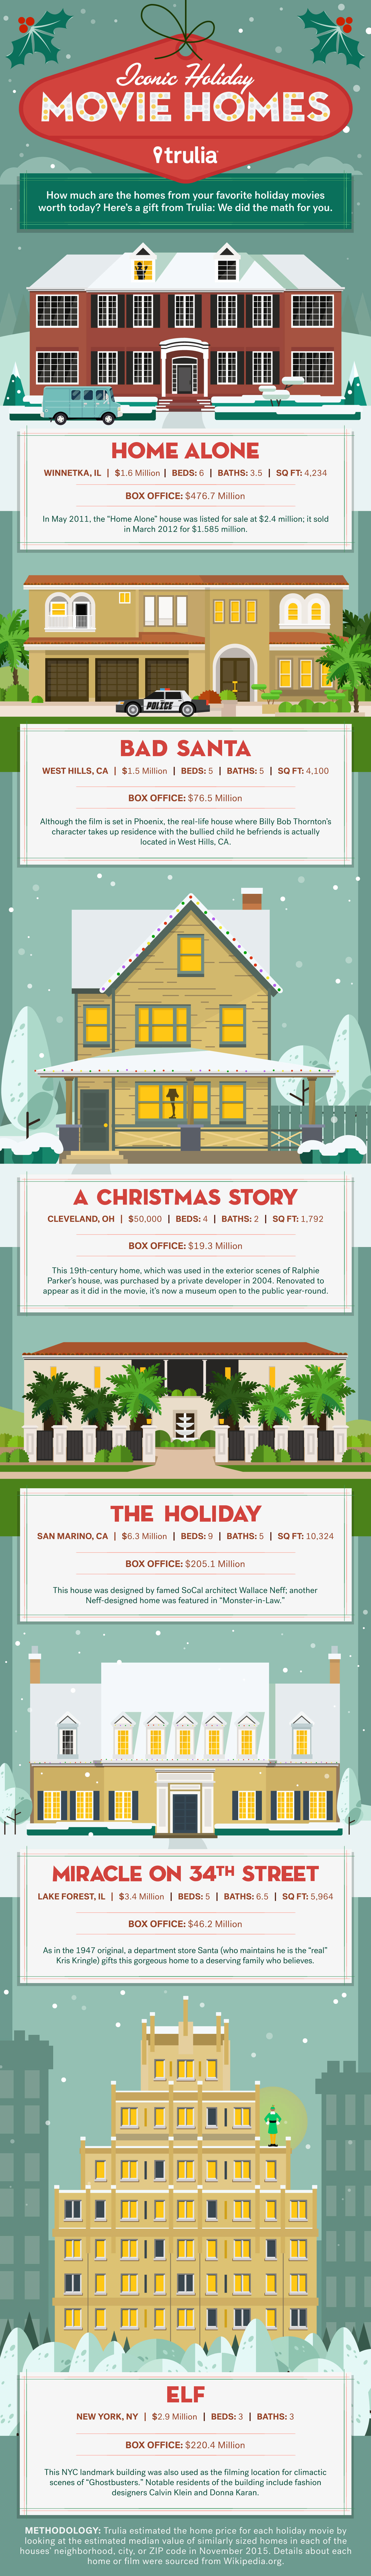 How much to holiday movie homes cost today?